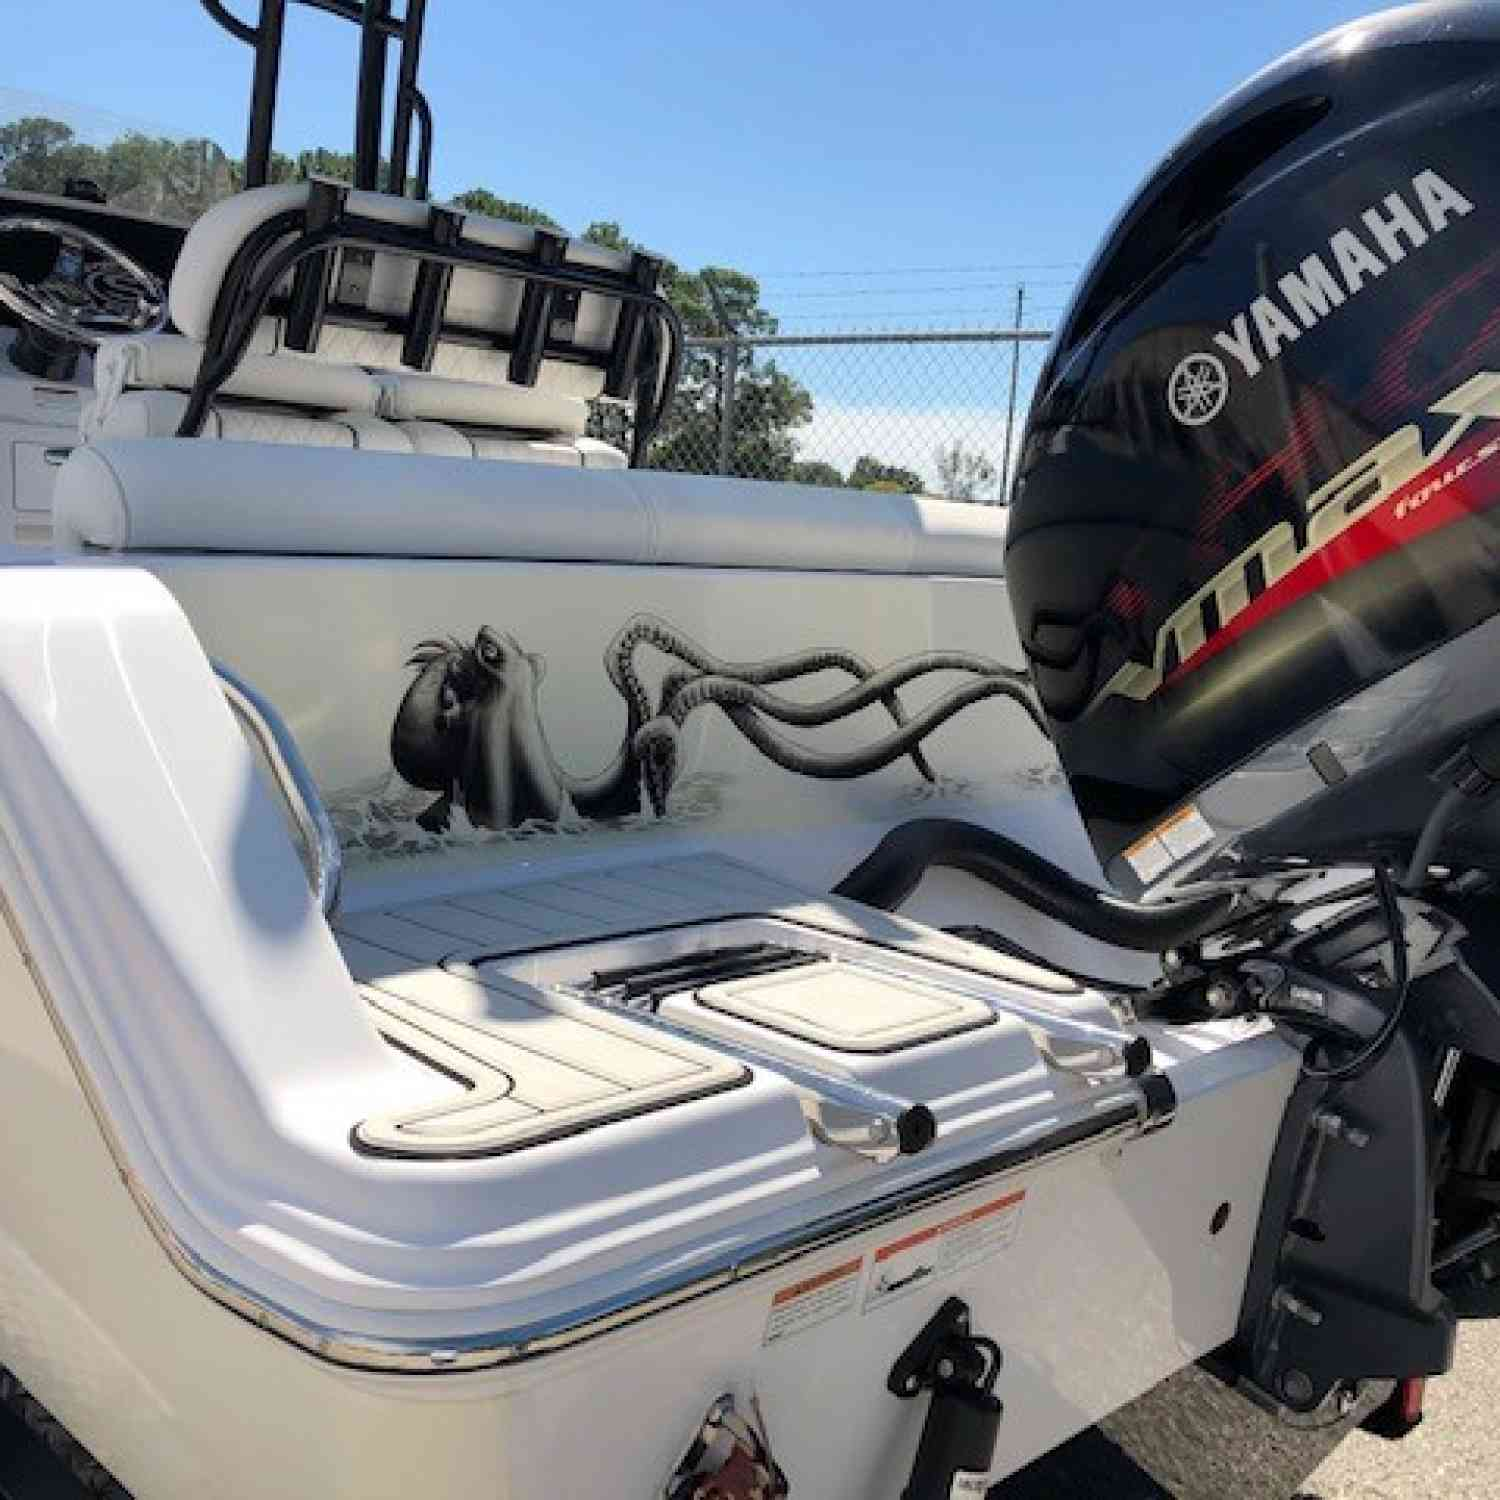 Title: Prepped and ready! - On board their Sportsman Heritage 211 Center Console - Location: St Augustine, Fl.. Participating in the Photo Contest #SportsmanDecember2020